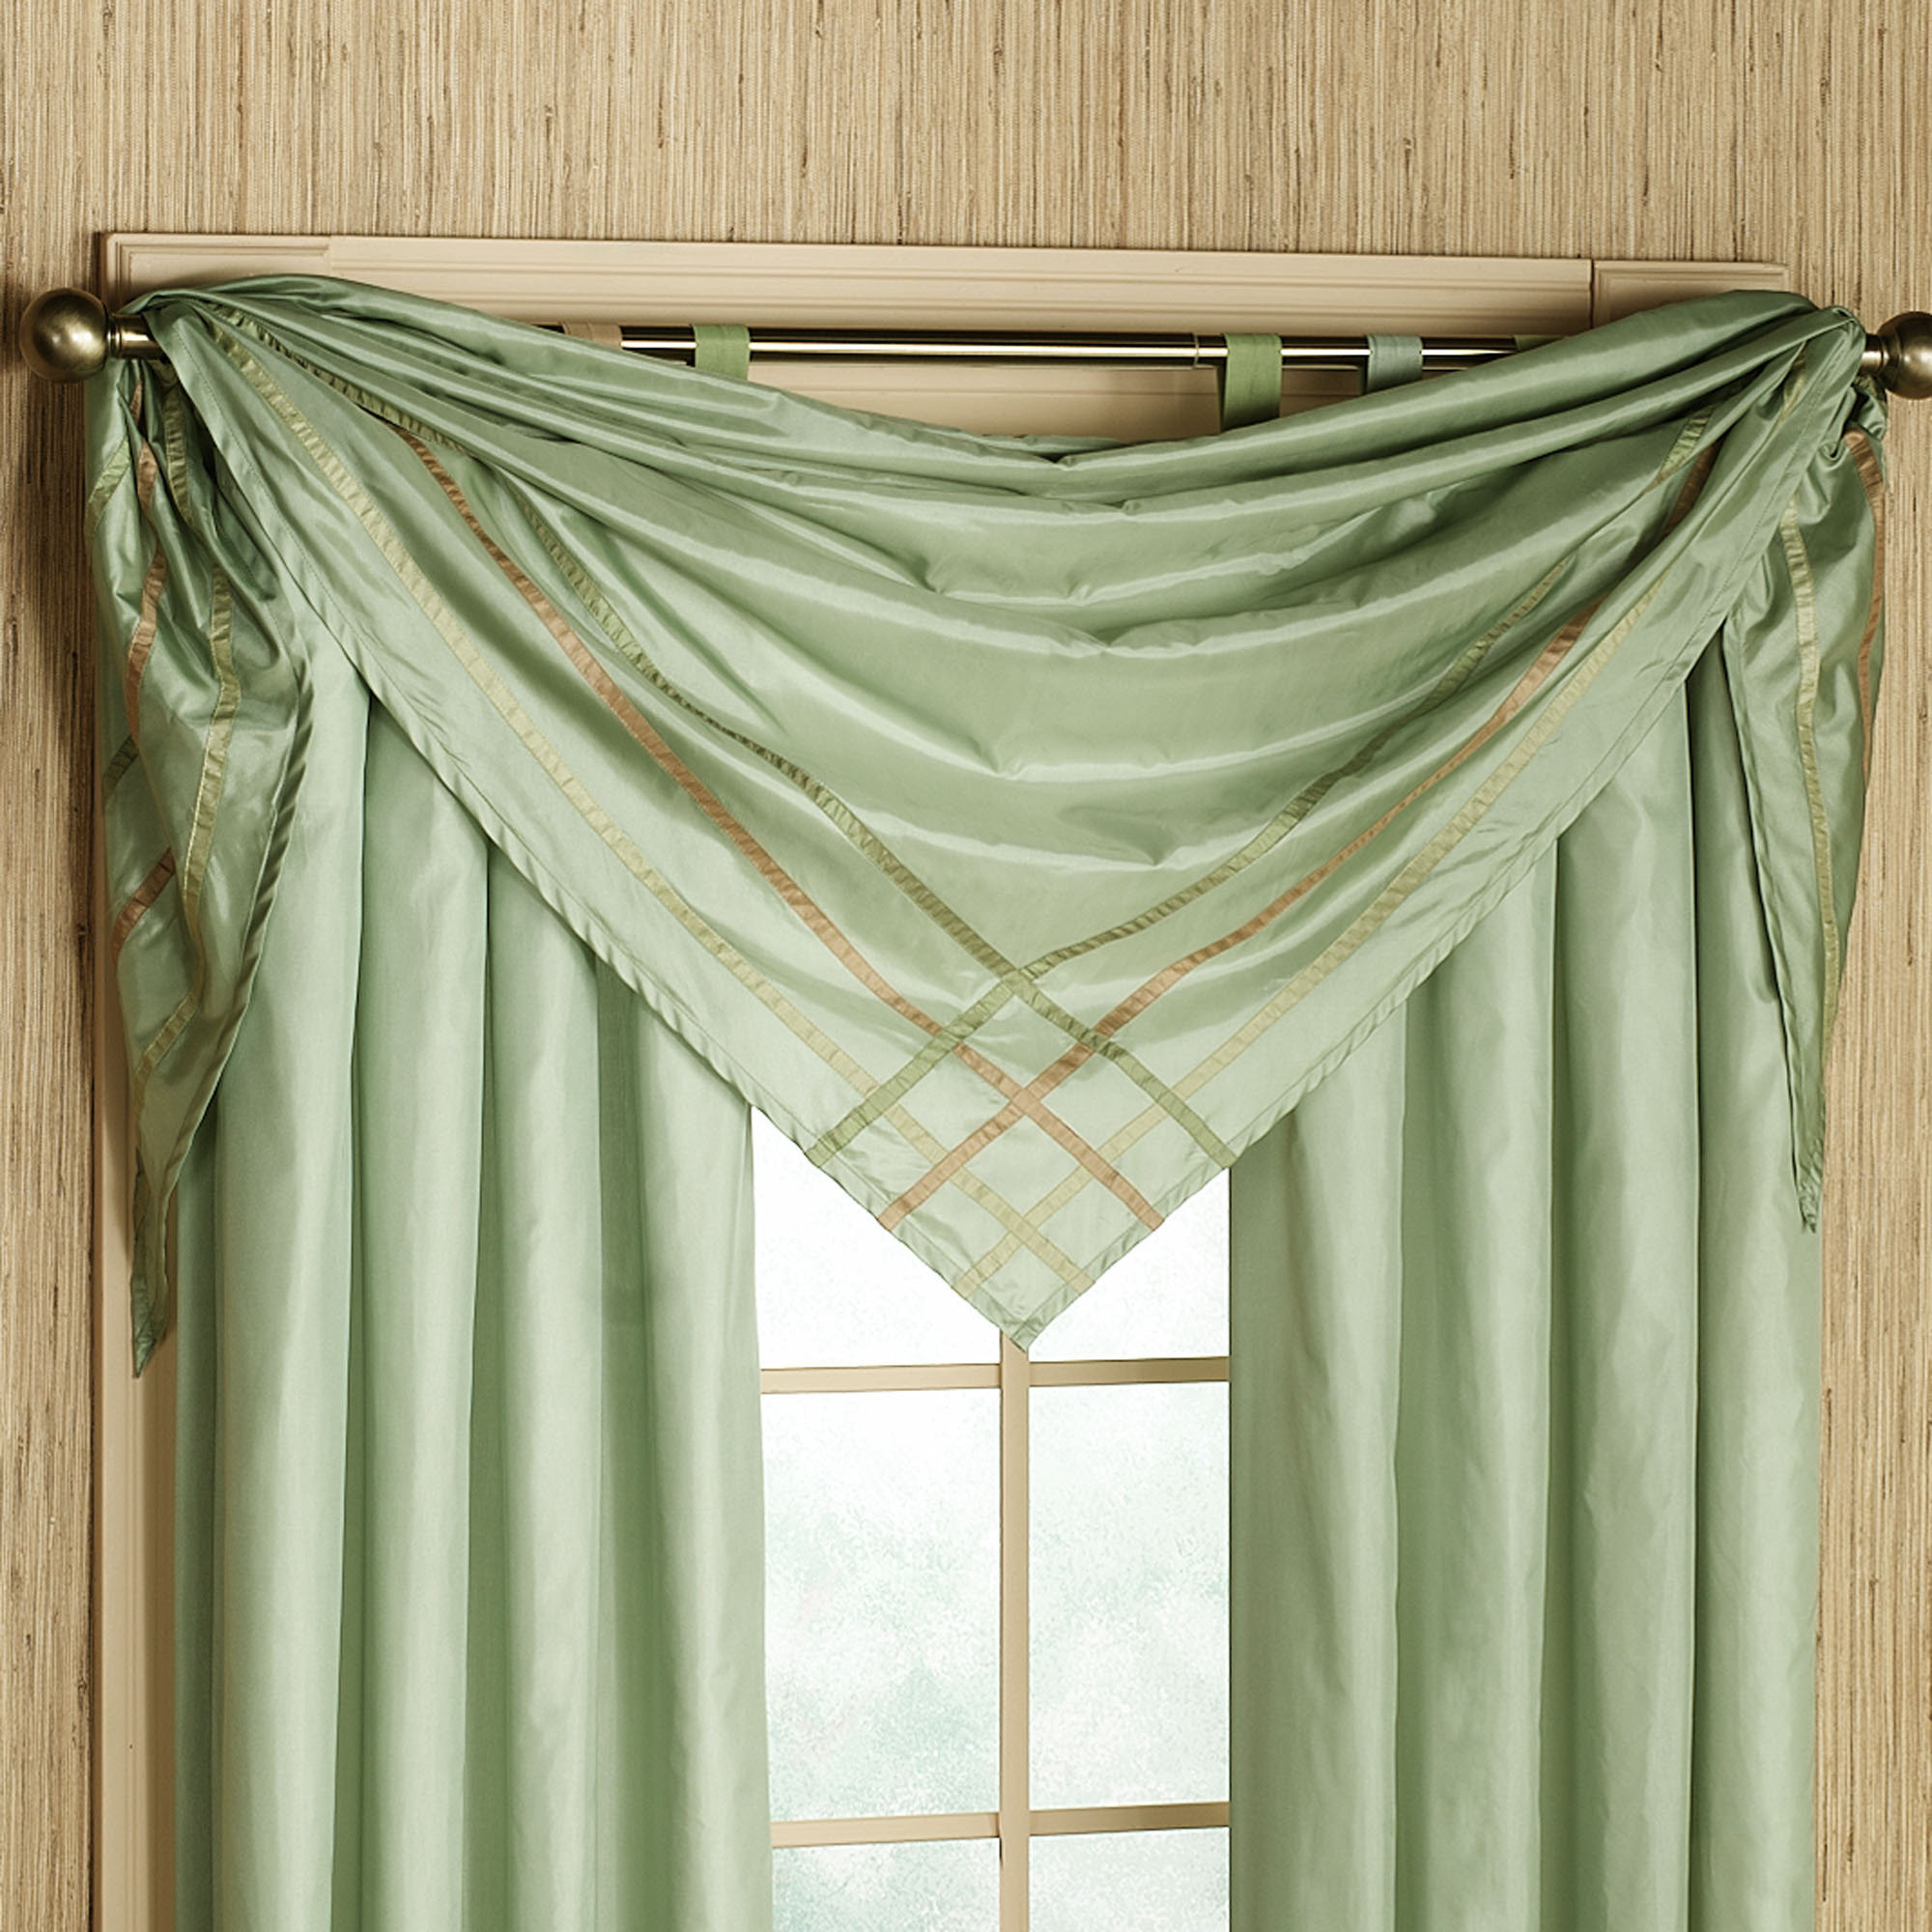 curtain scarf ideas Home The Honoroak